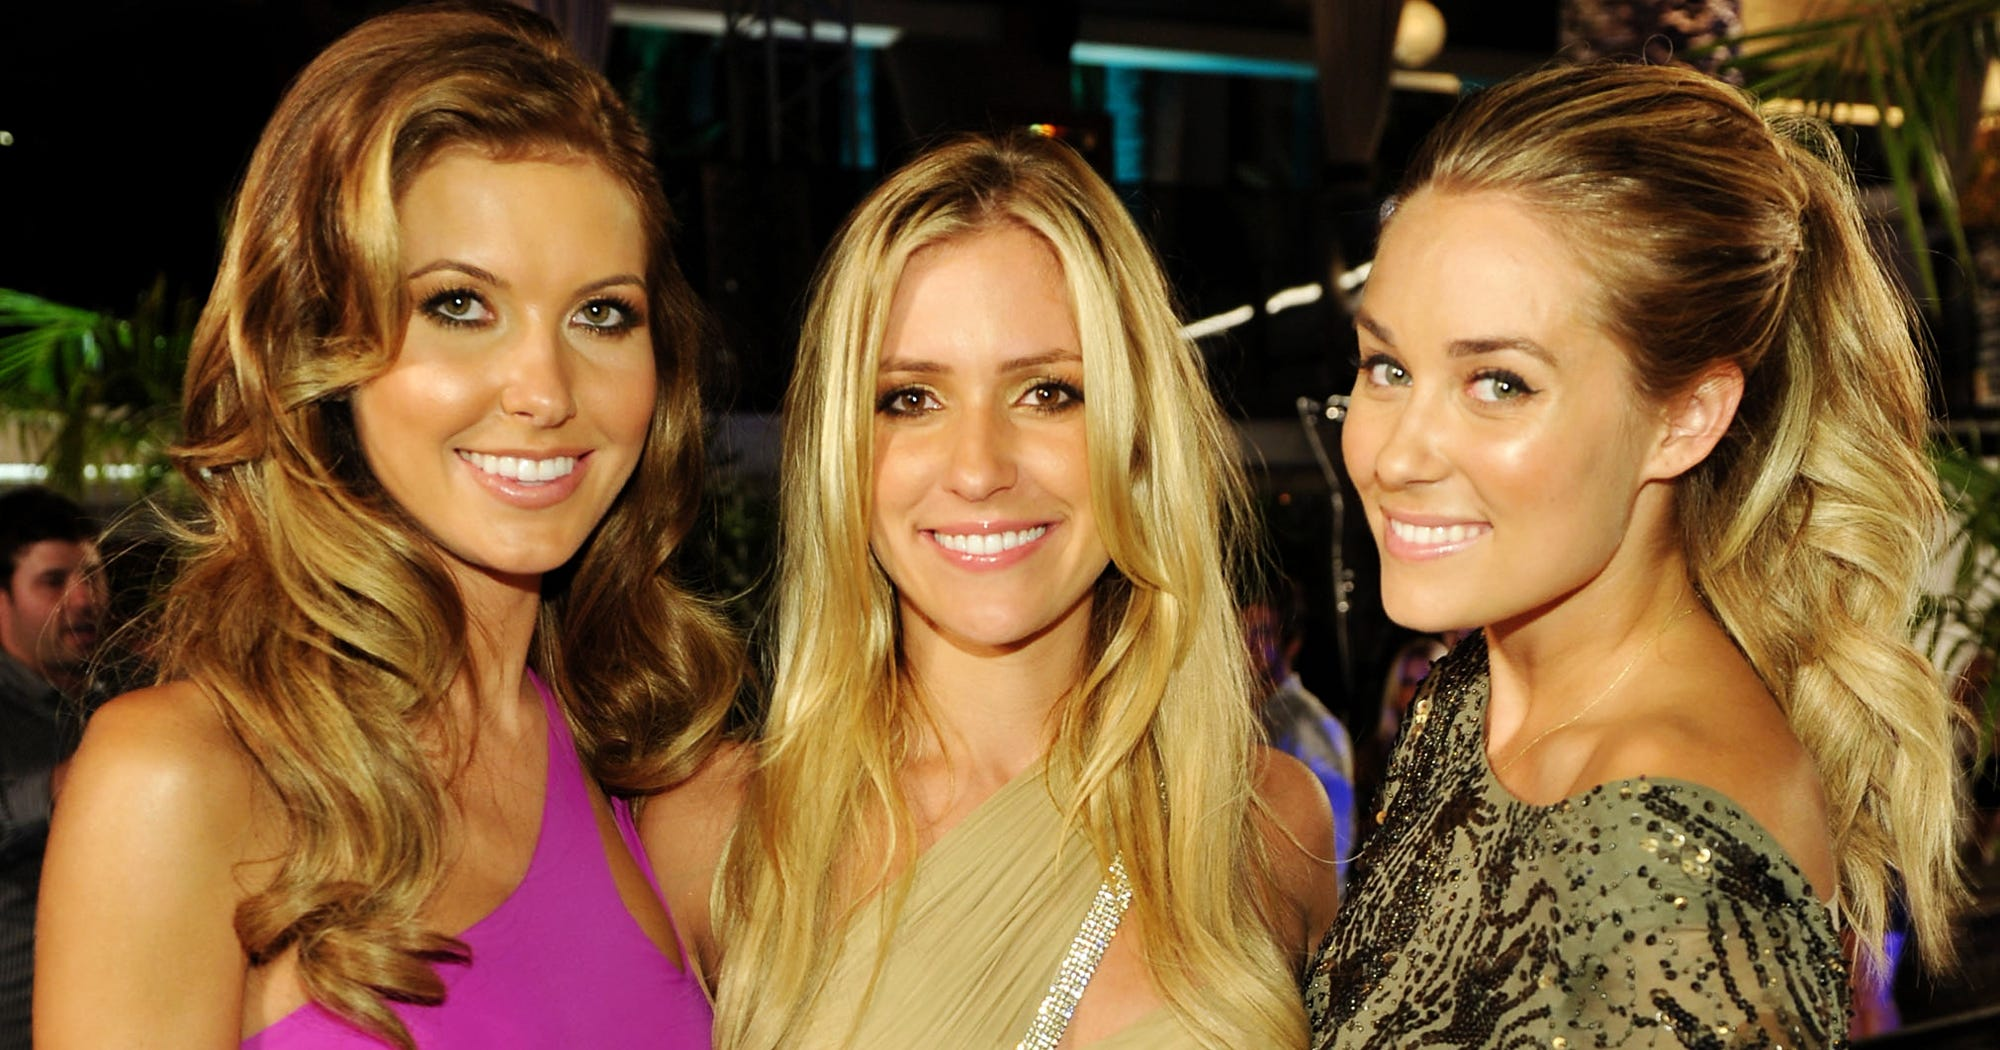 Is The Hills: New Beginnings Real Or Fake? | TheThings